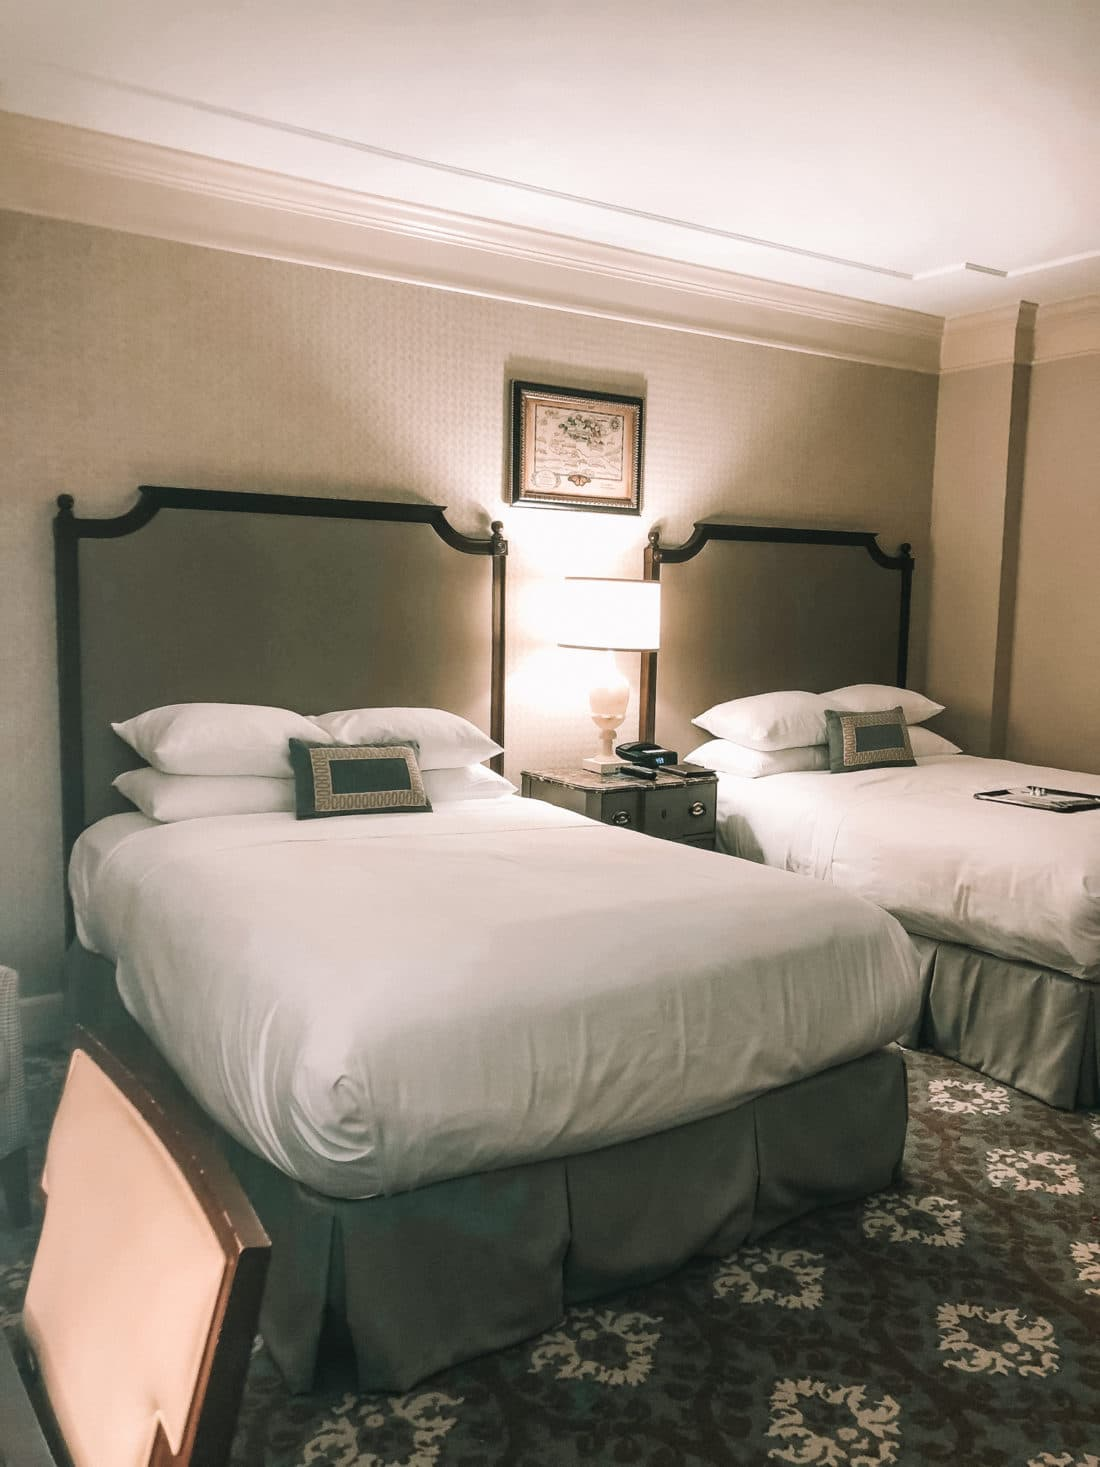 Hershey Hotel Queen Beds. The Hotel Hershey is a luxury hotel located in Hershey, PA. The Double Queen room offers a luxry stay for up to 4 people.